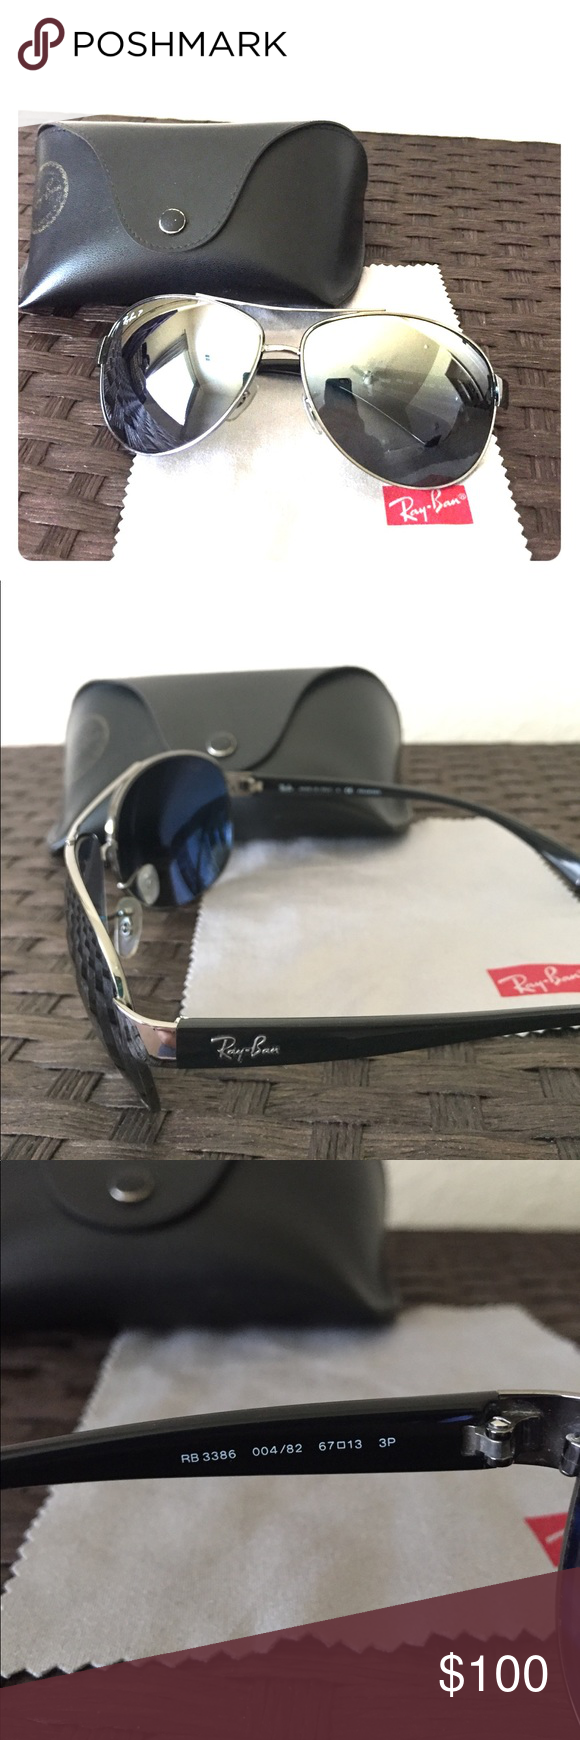 Polarized Ray-Ban Aviators Fantastic pair of Polarized Ray-Ban Aviators!! These aviators have a slight curve in them to hug your face. These have always been kept in their original case. The sunglasses come with the original case and cleaning cloth. Ray-Ban Accessories Sunglasses